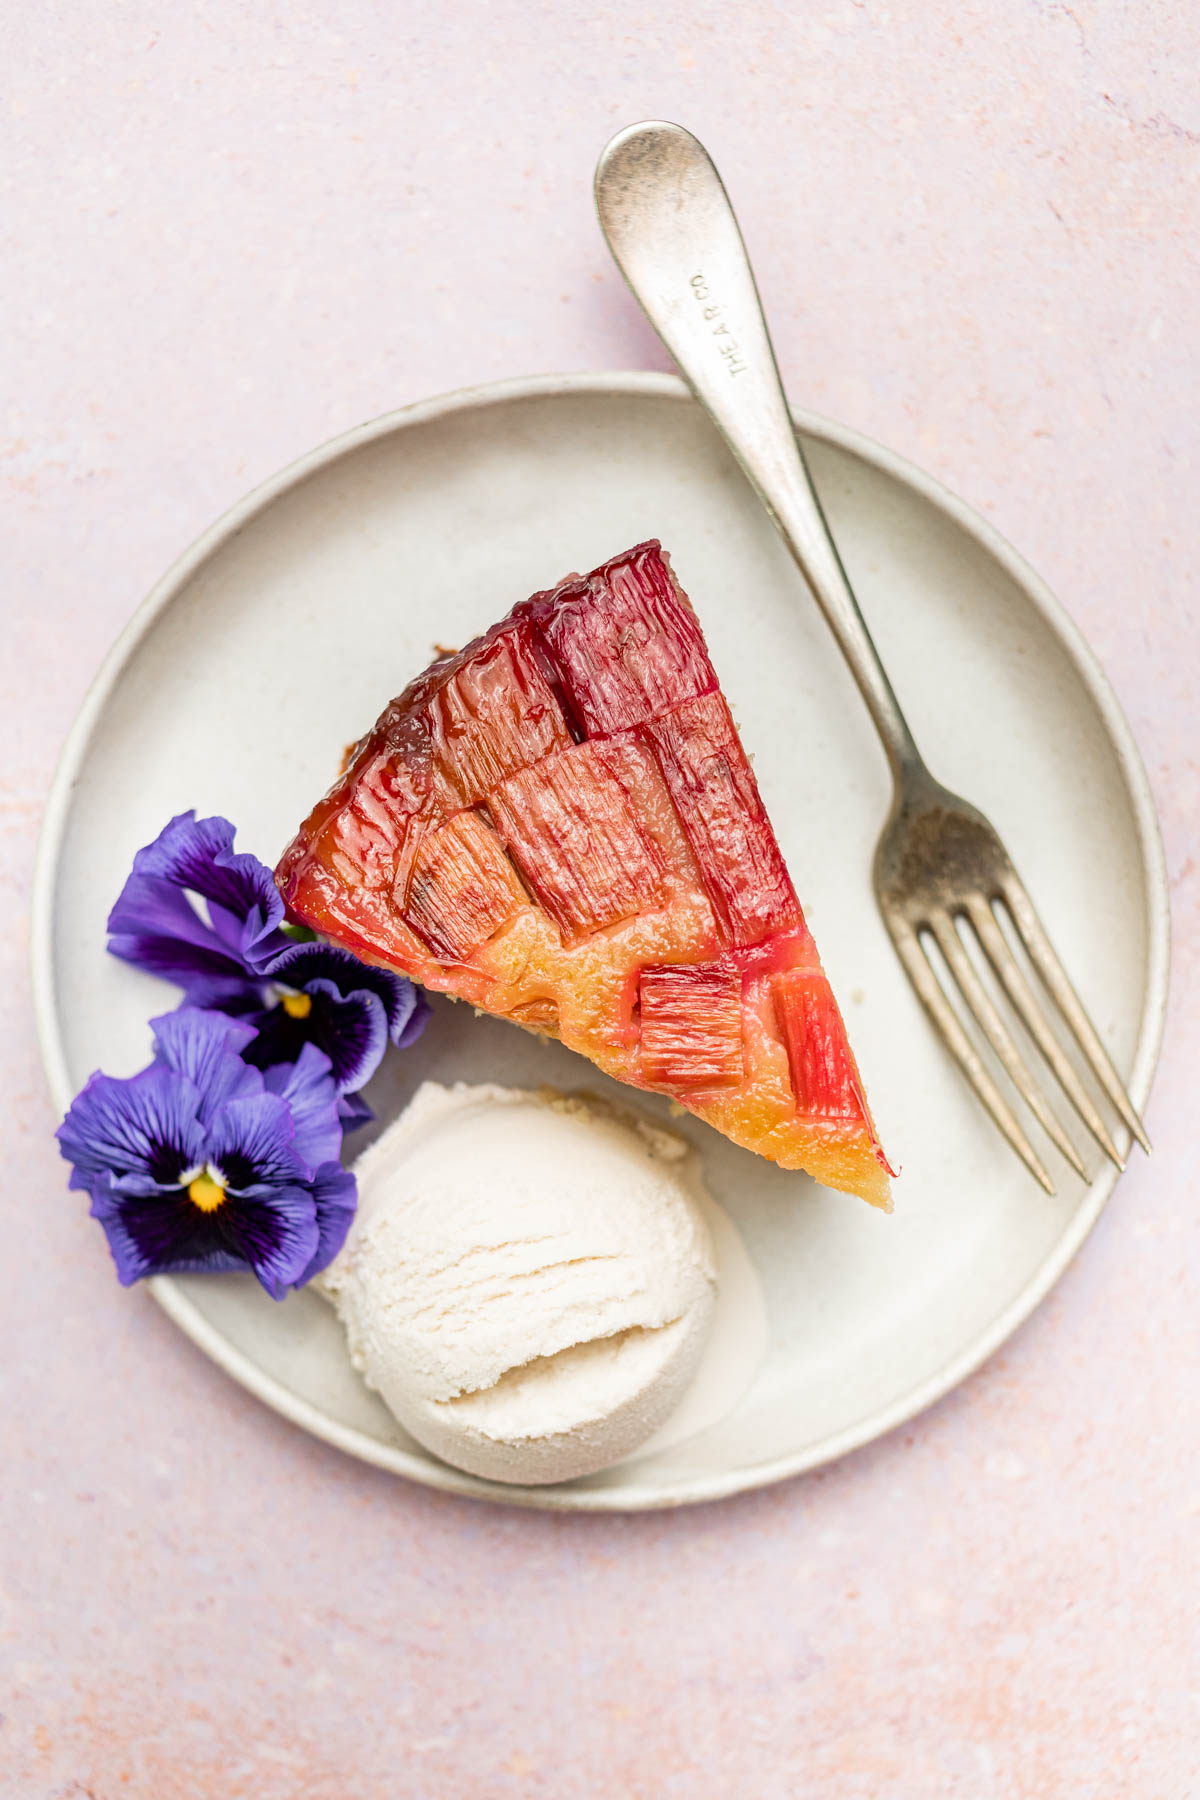 Slice of rhubarb cake with ice cream and pansies.